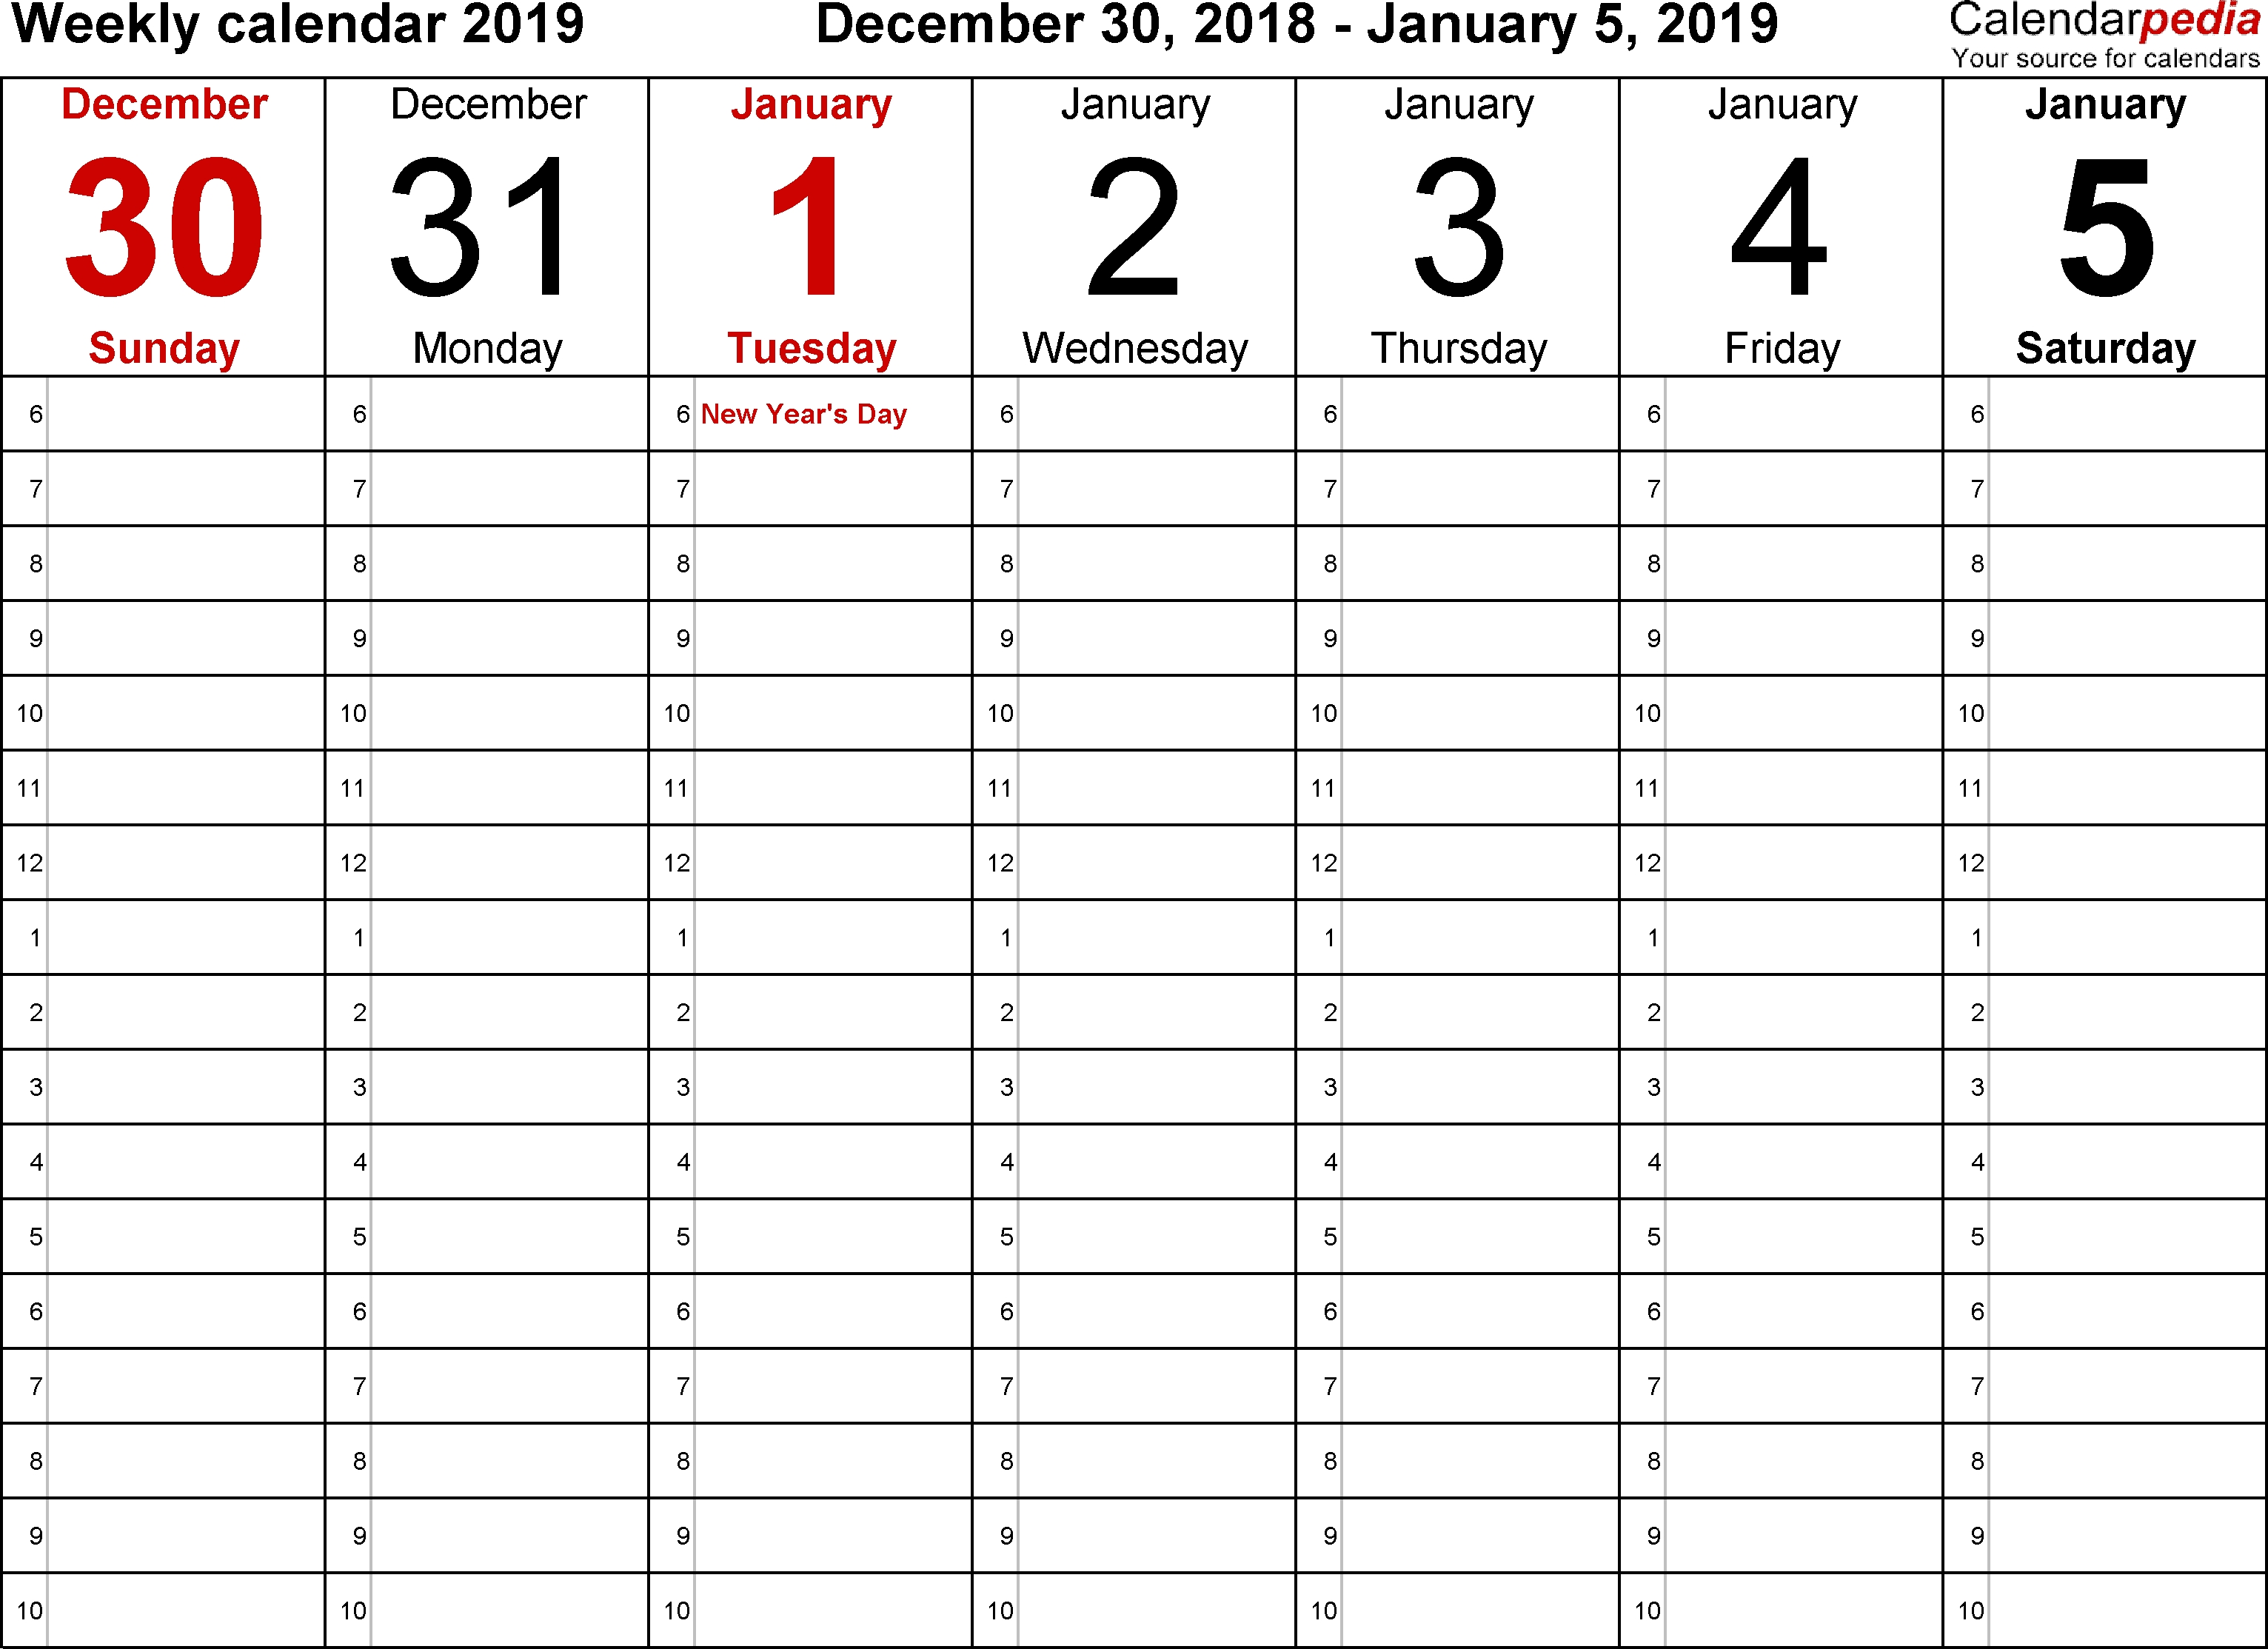 Weekly Calendars 2019 For Word - 12 Free Printable Templates regarding Printable Calendar 2019 With Lines